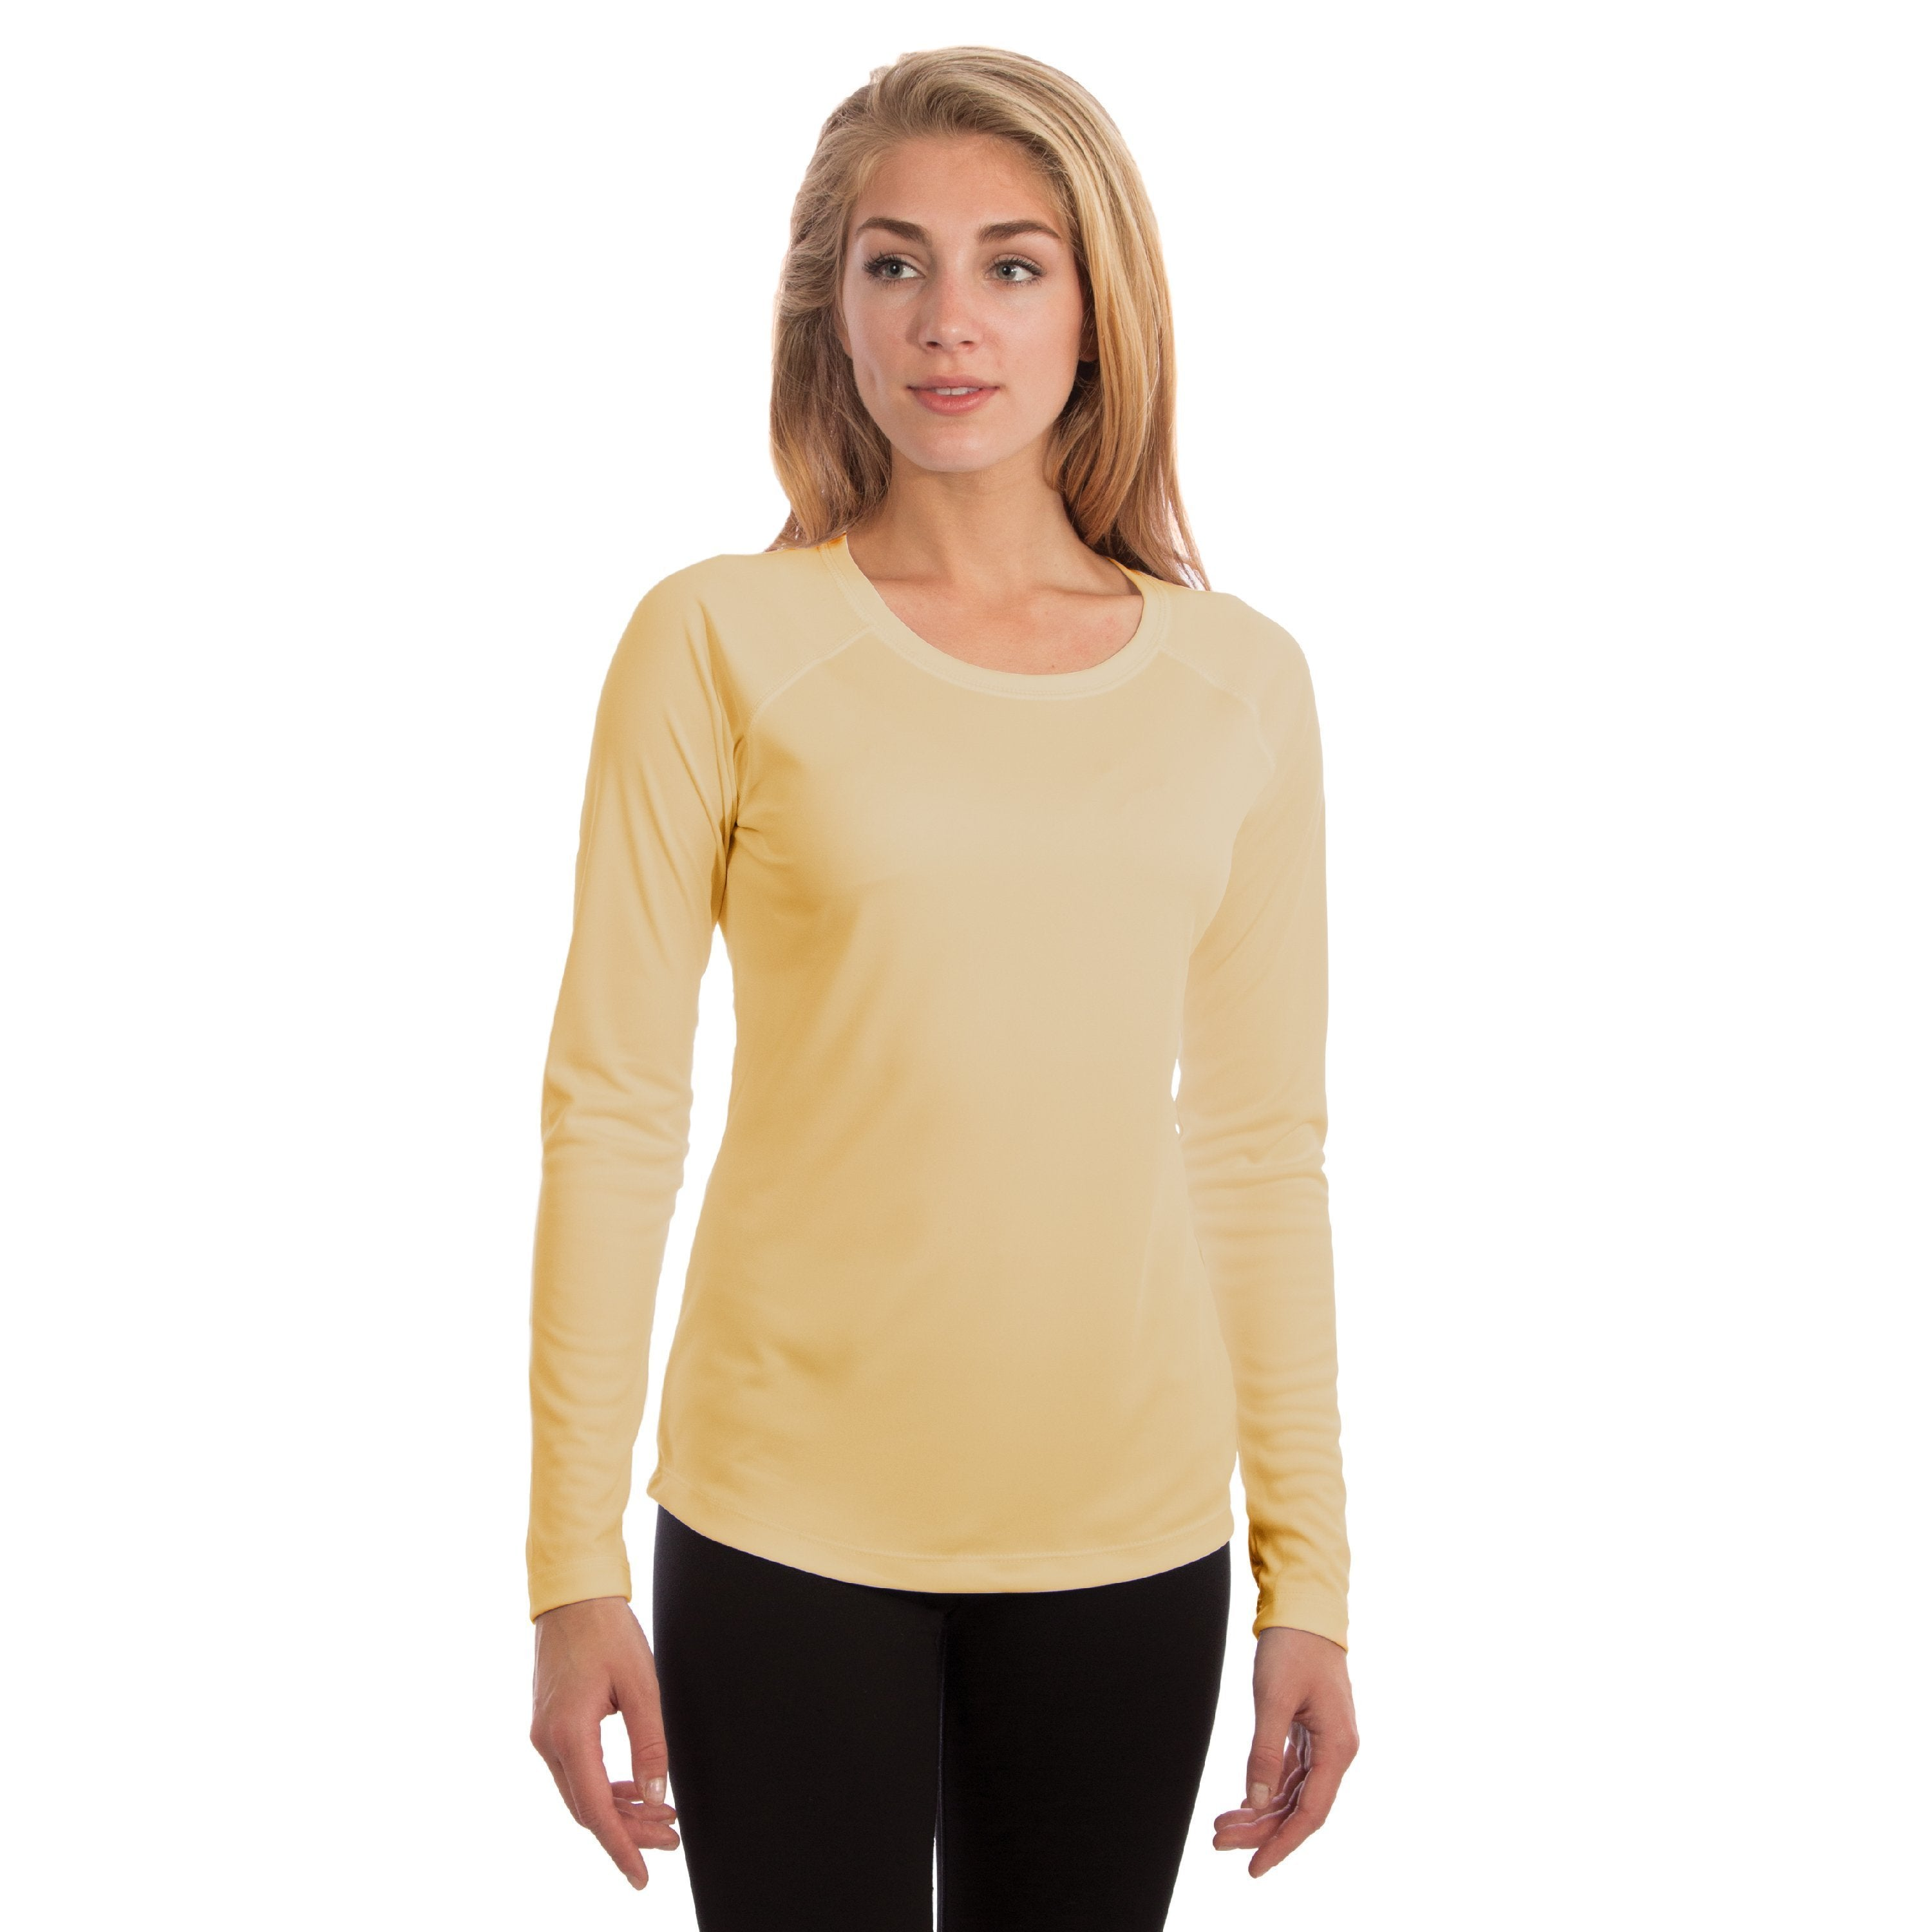 M750PY Ladies Solar Slim Fit Long Sleeve - Pale Yellow